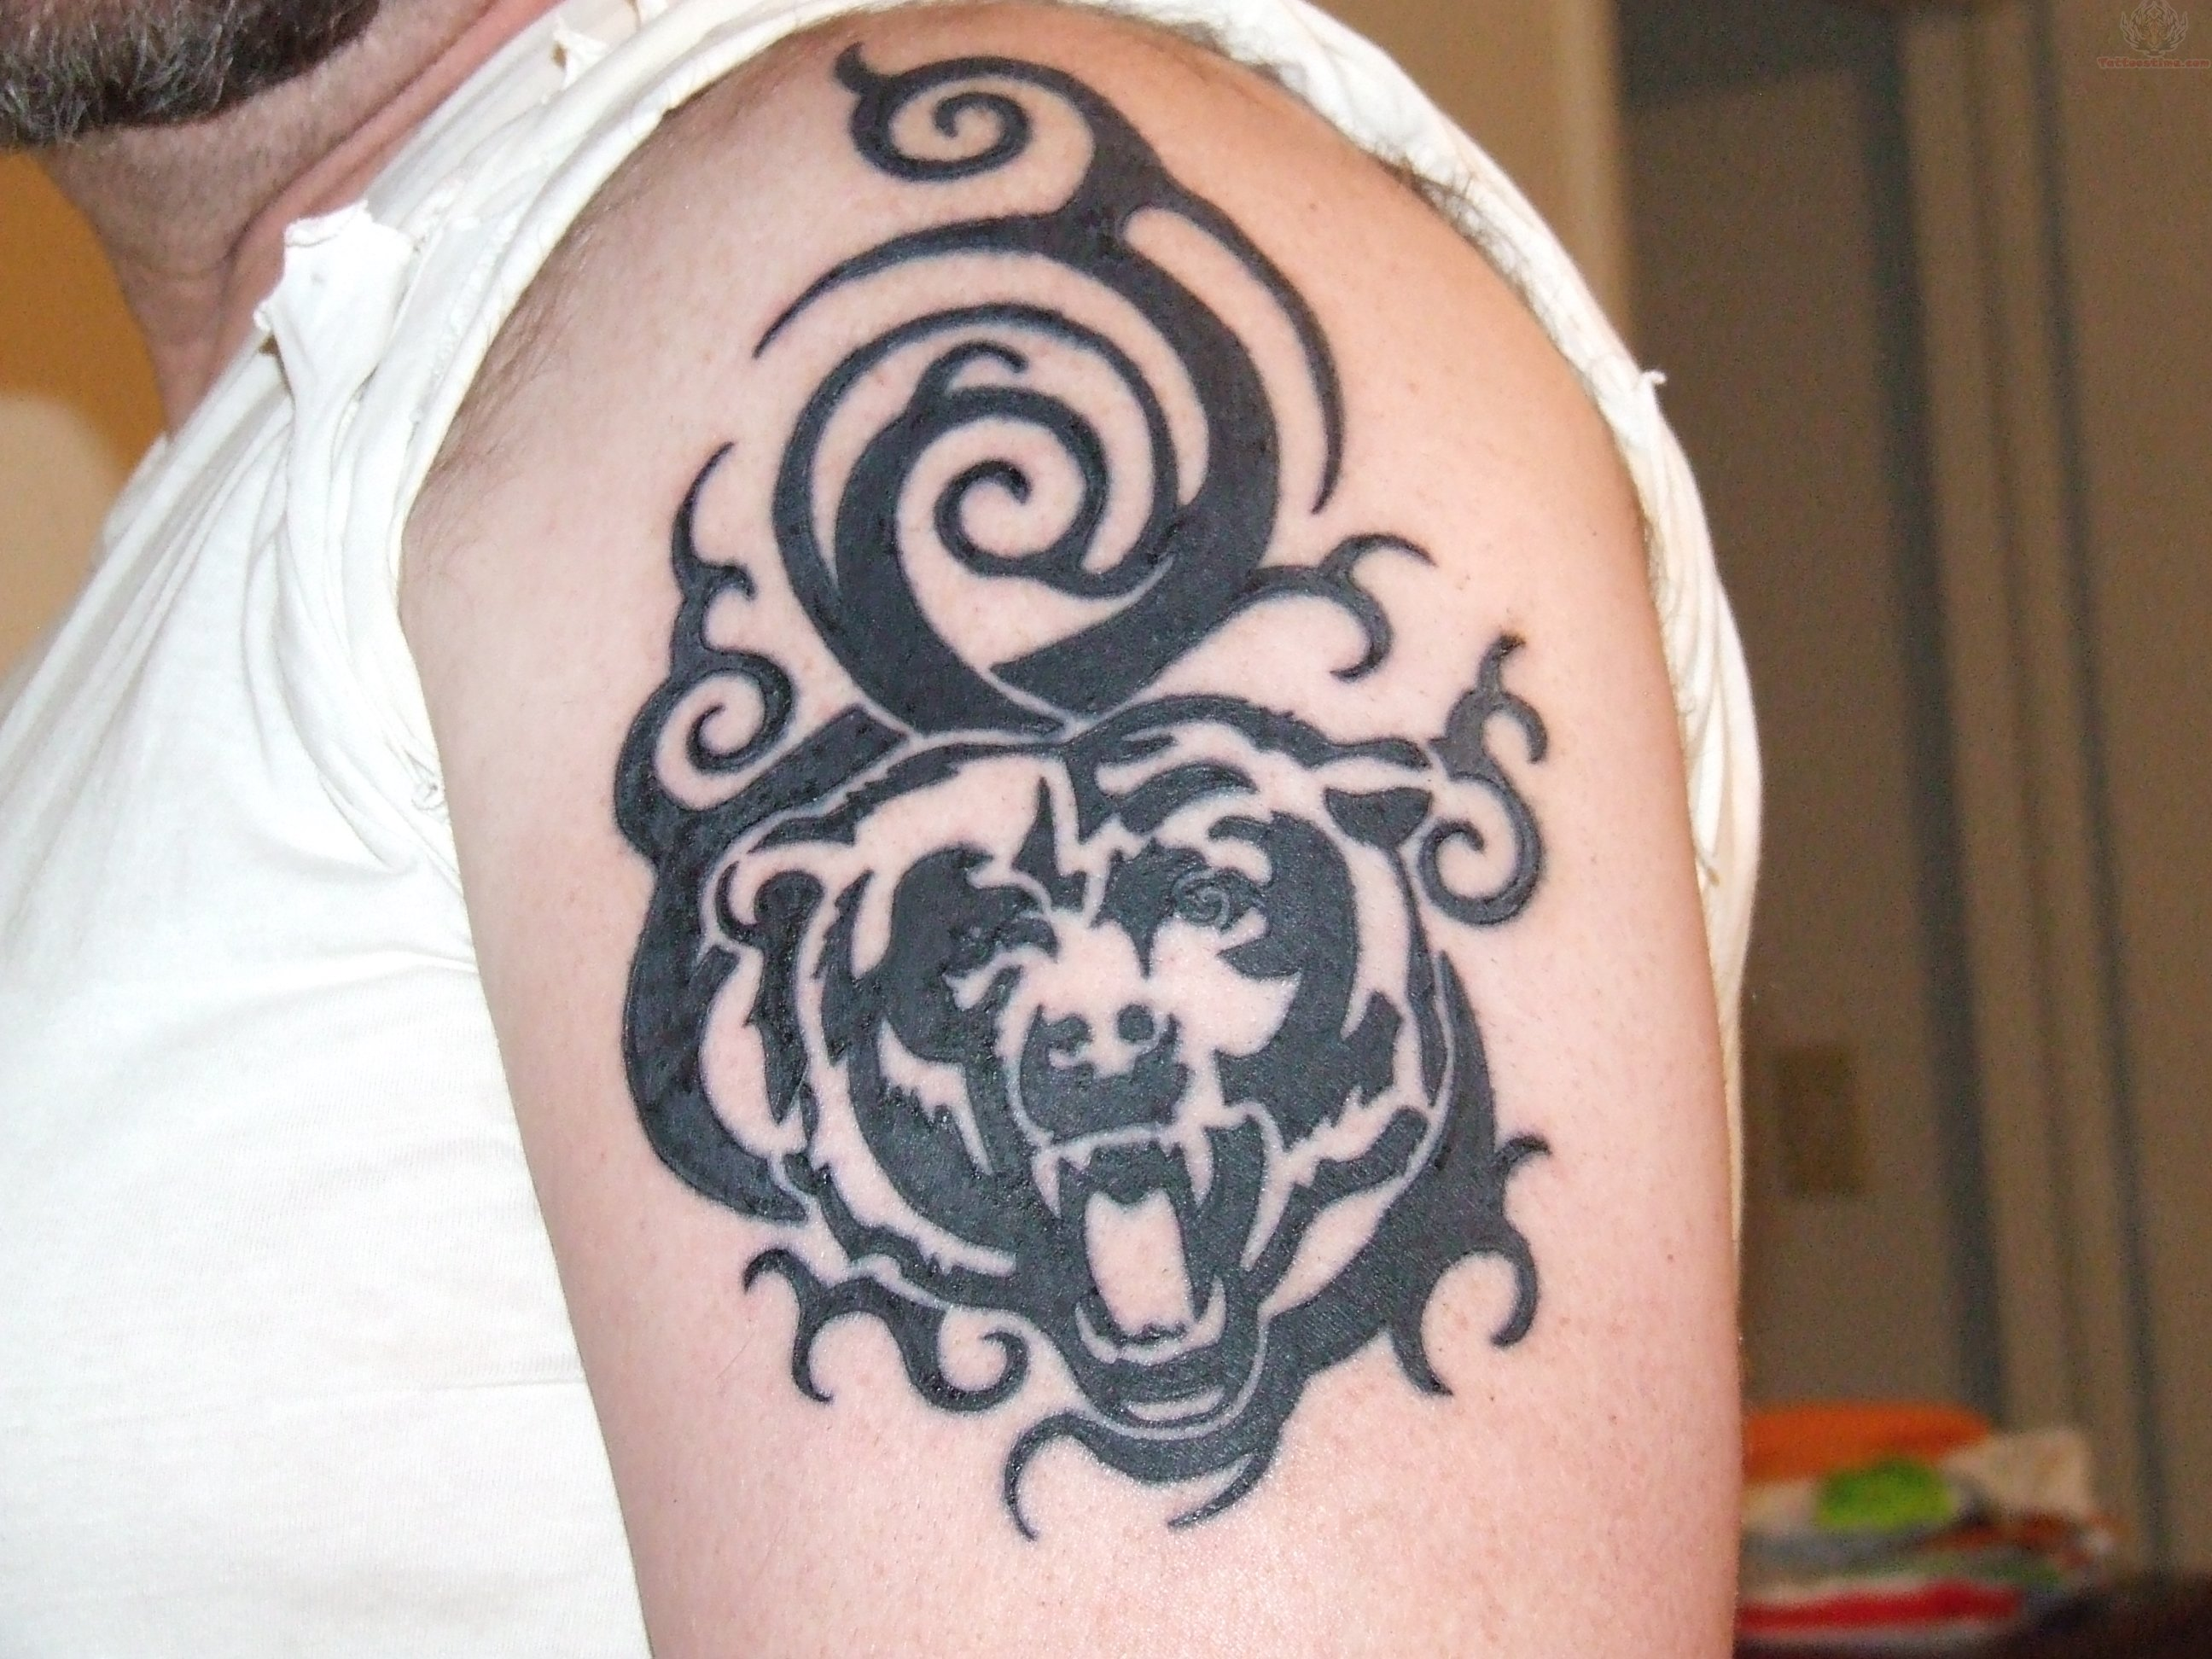 Tribal-Tattoos Black-Tribal-Bear-Head-Tattoo-On-Man-Left-Shoulder